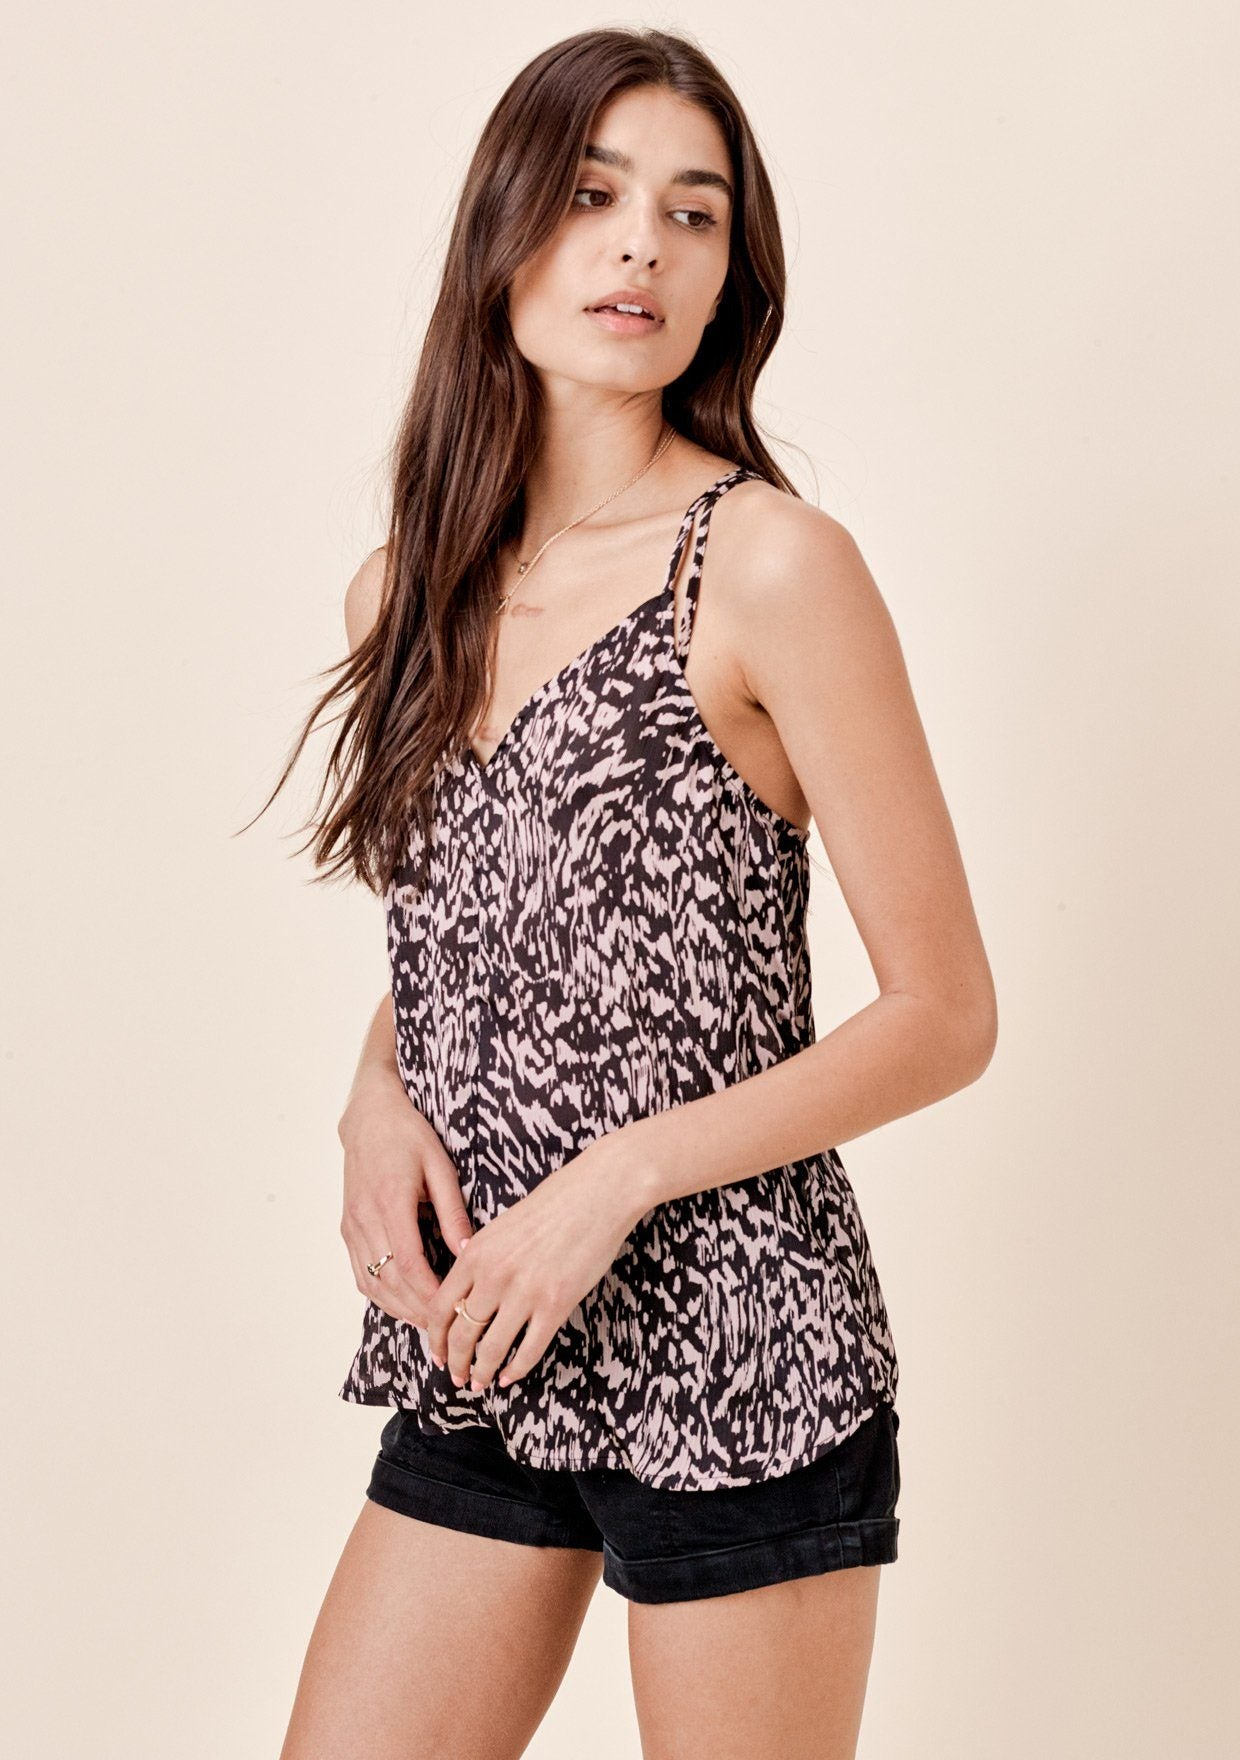 [Color: Black/Taupe] Lovestitch Silky, abstract animal print, racerback tank top.